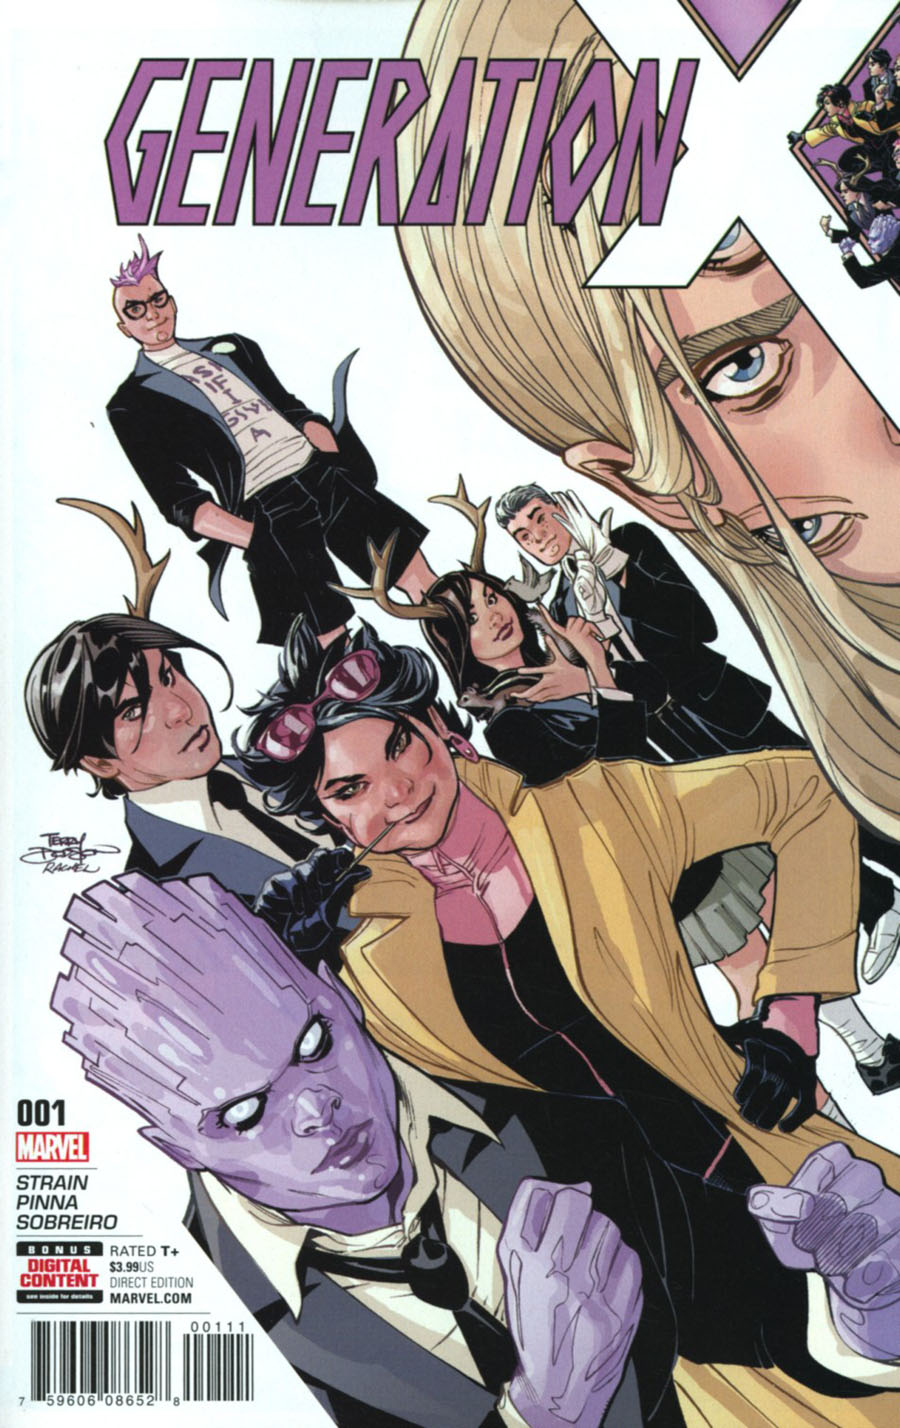 Generation X Vol 2 #1 Cover A Regular Terry Dodson Cover (Resurrxion Tie-In)